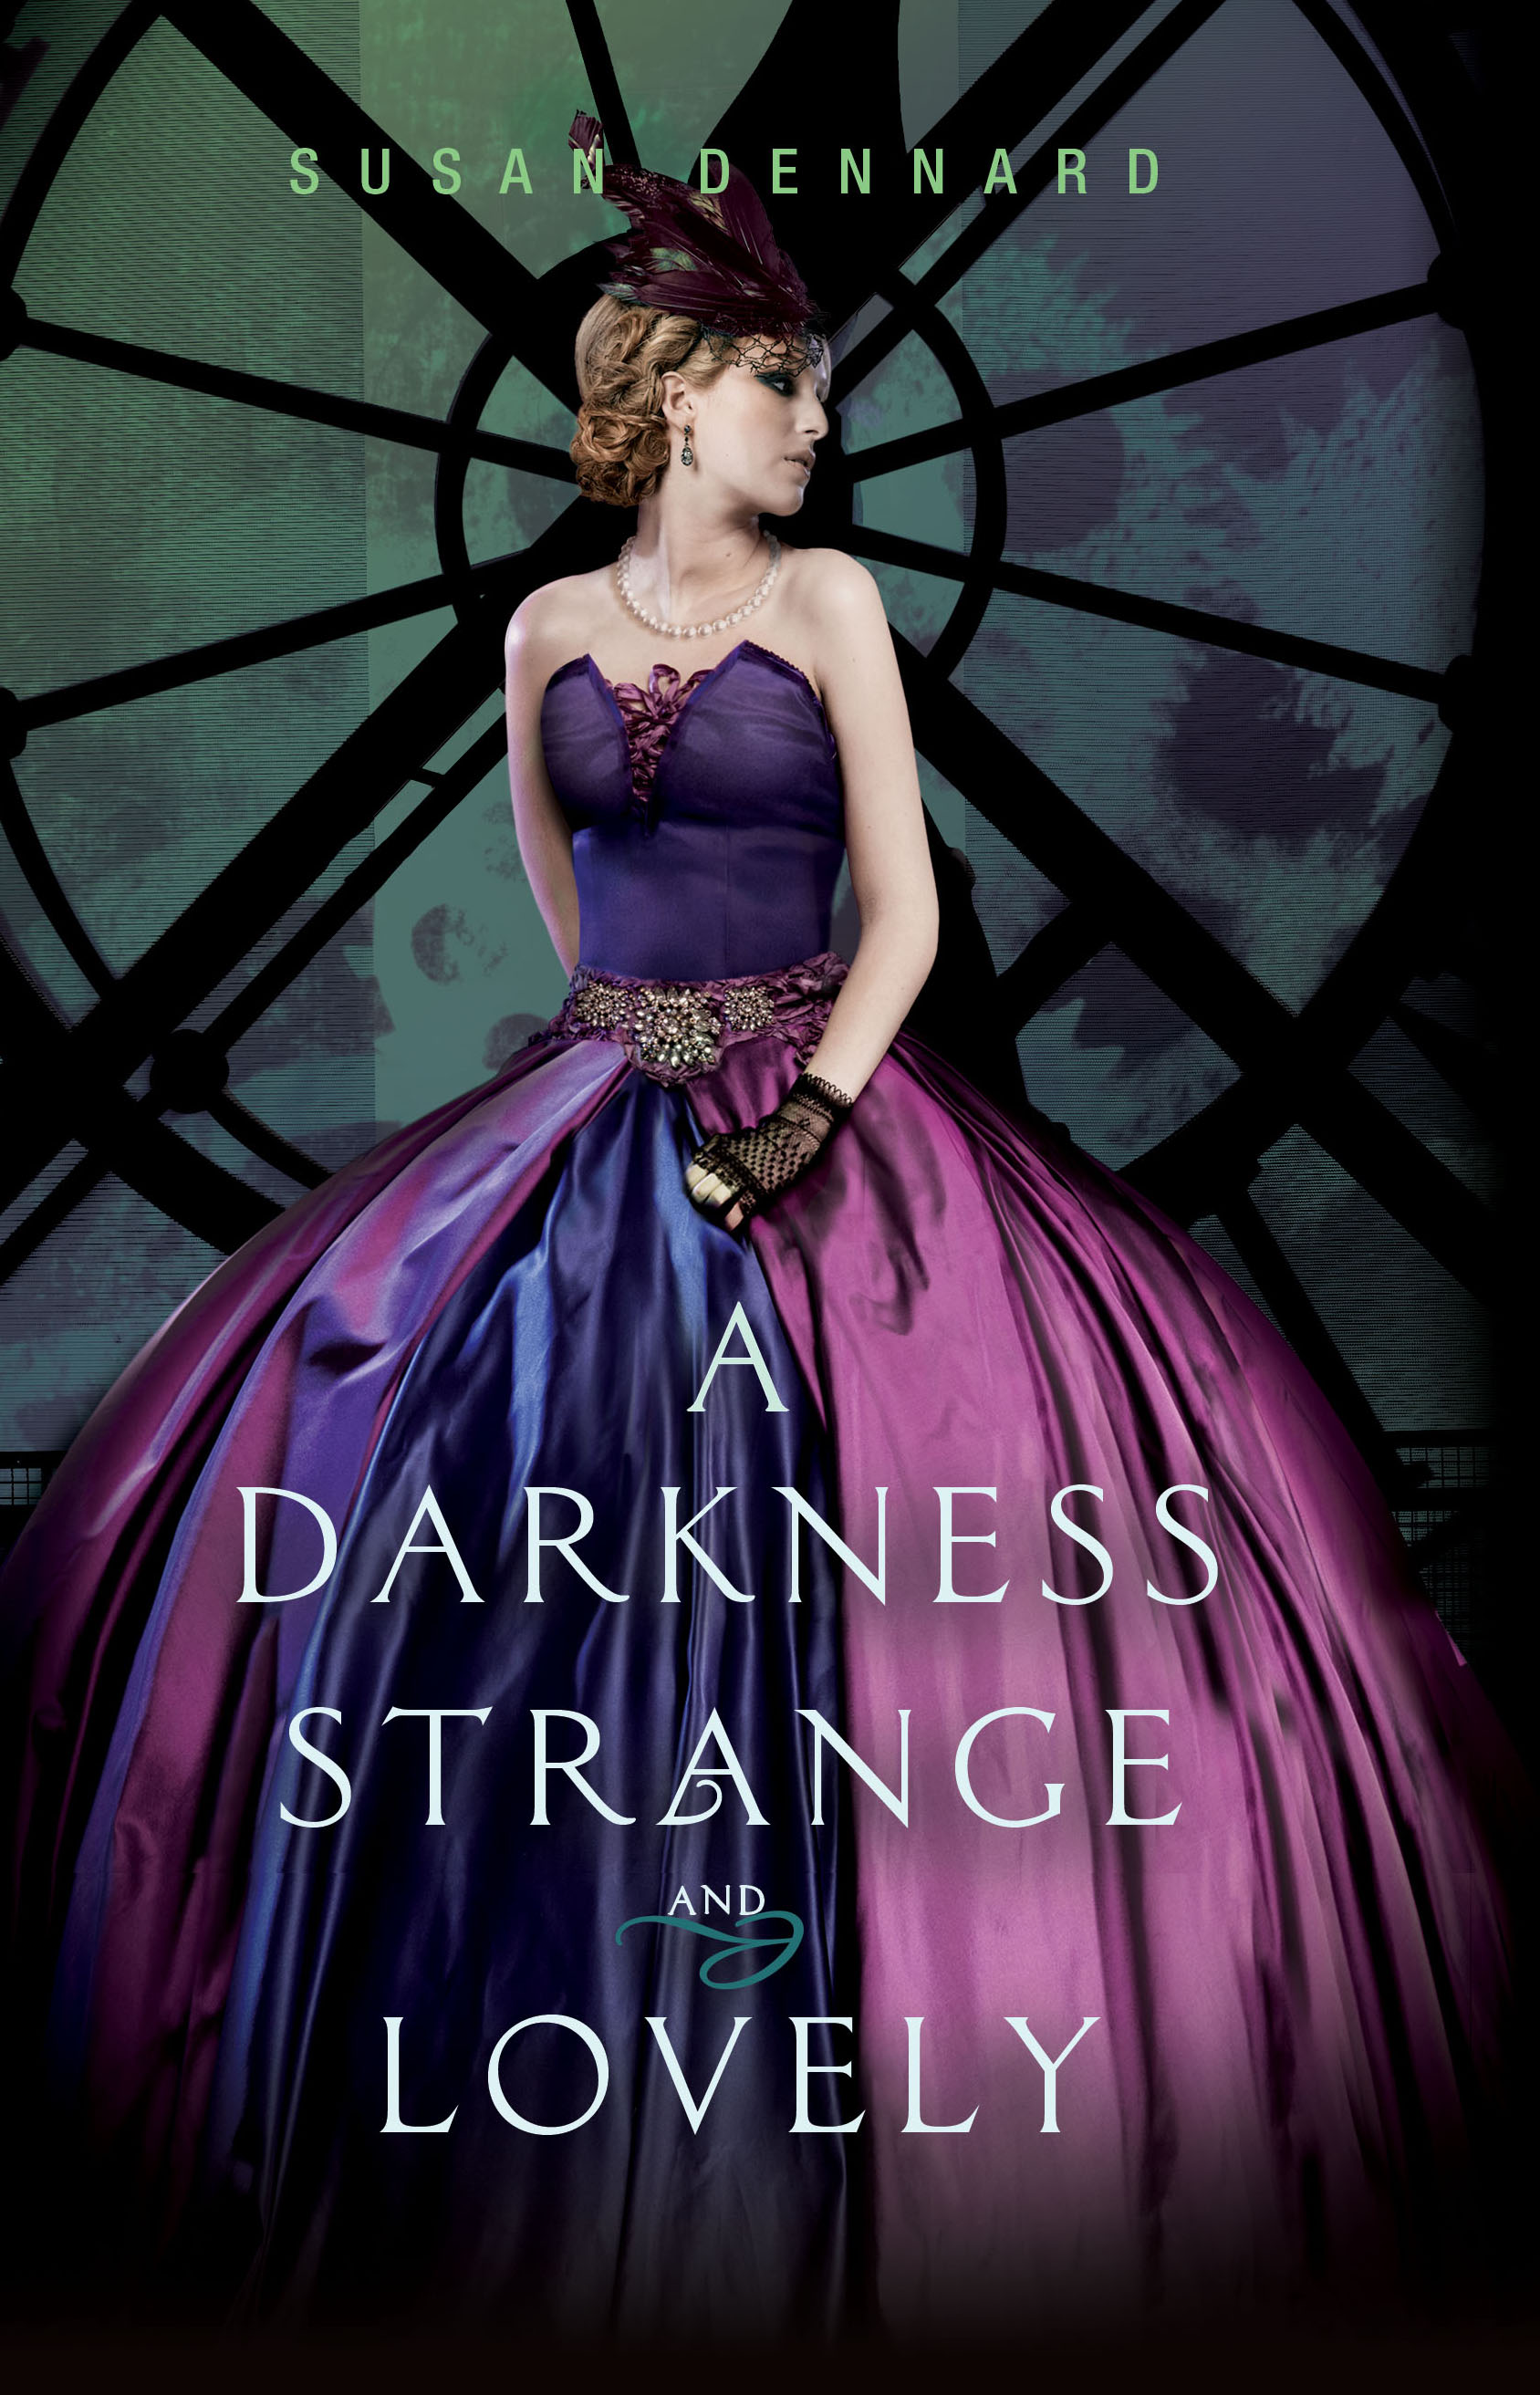 https://www.goodreads.com/book/show/13624584-a-darkness-strange-and-lovely?ac=1